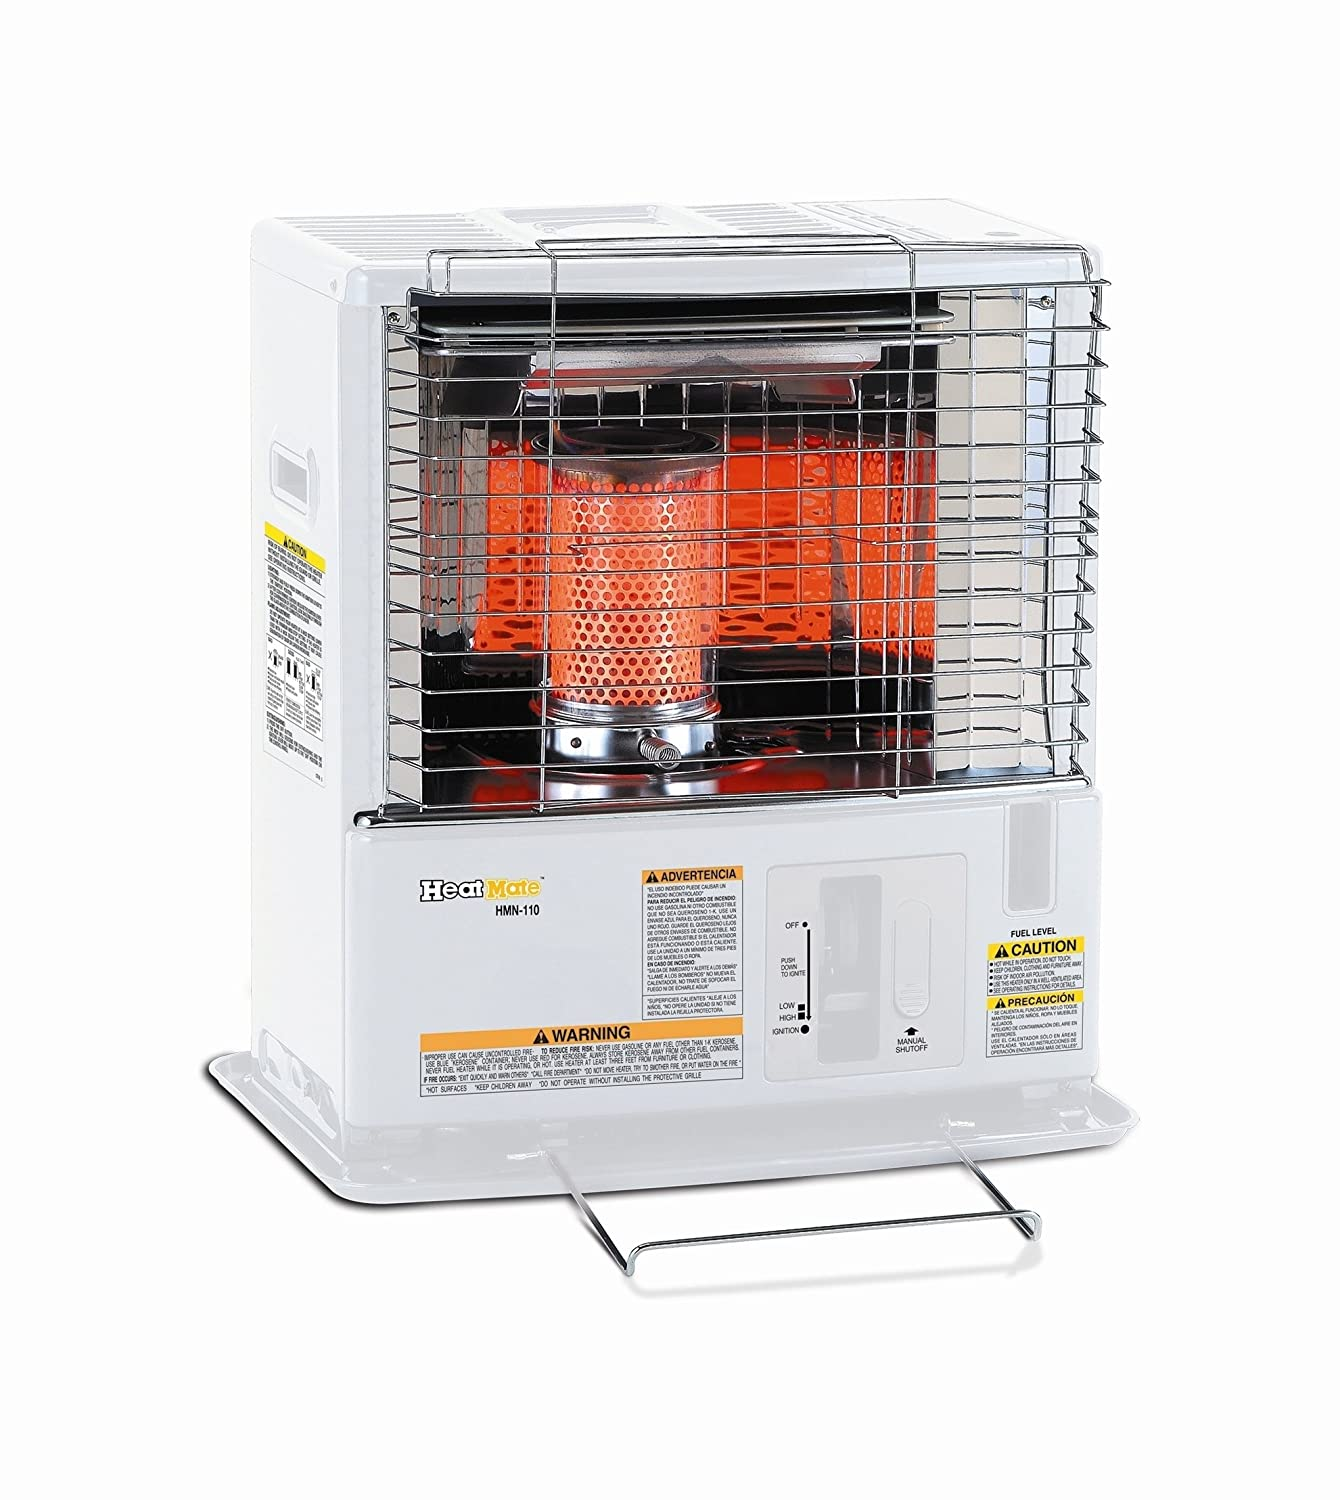 Sengoku HeatMate 10,000-BTU Portable Indoor/Outdoor Radiant Kerosene Heater, HMN-110